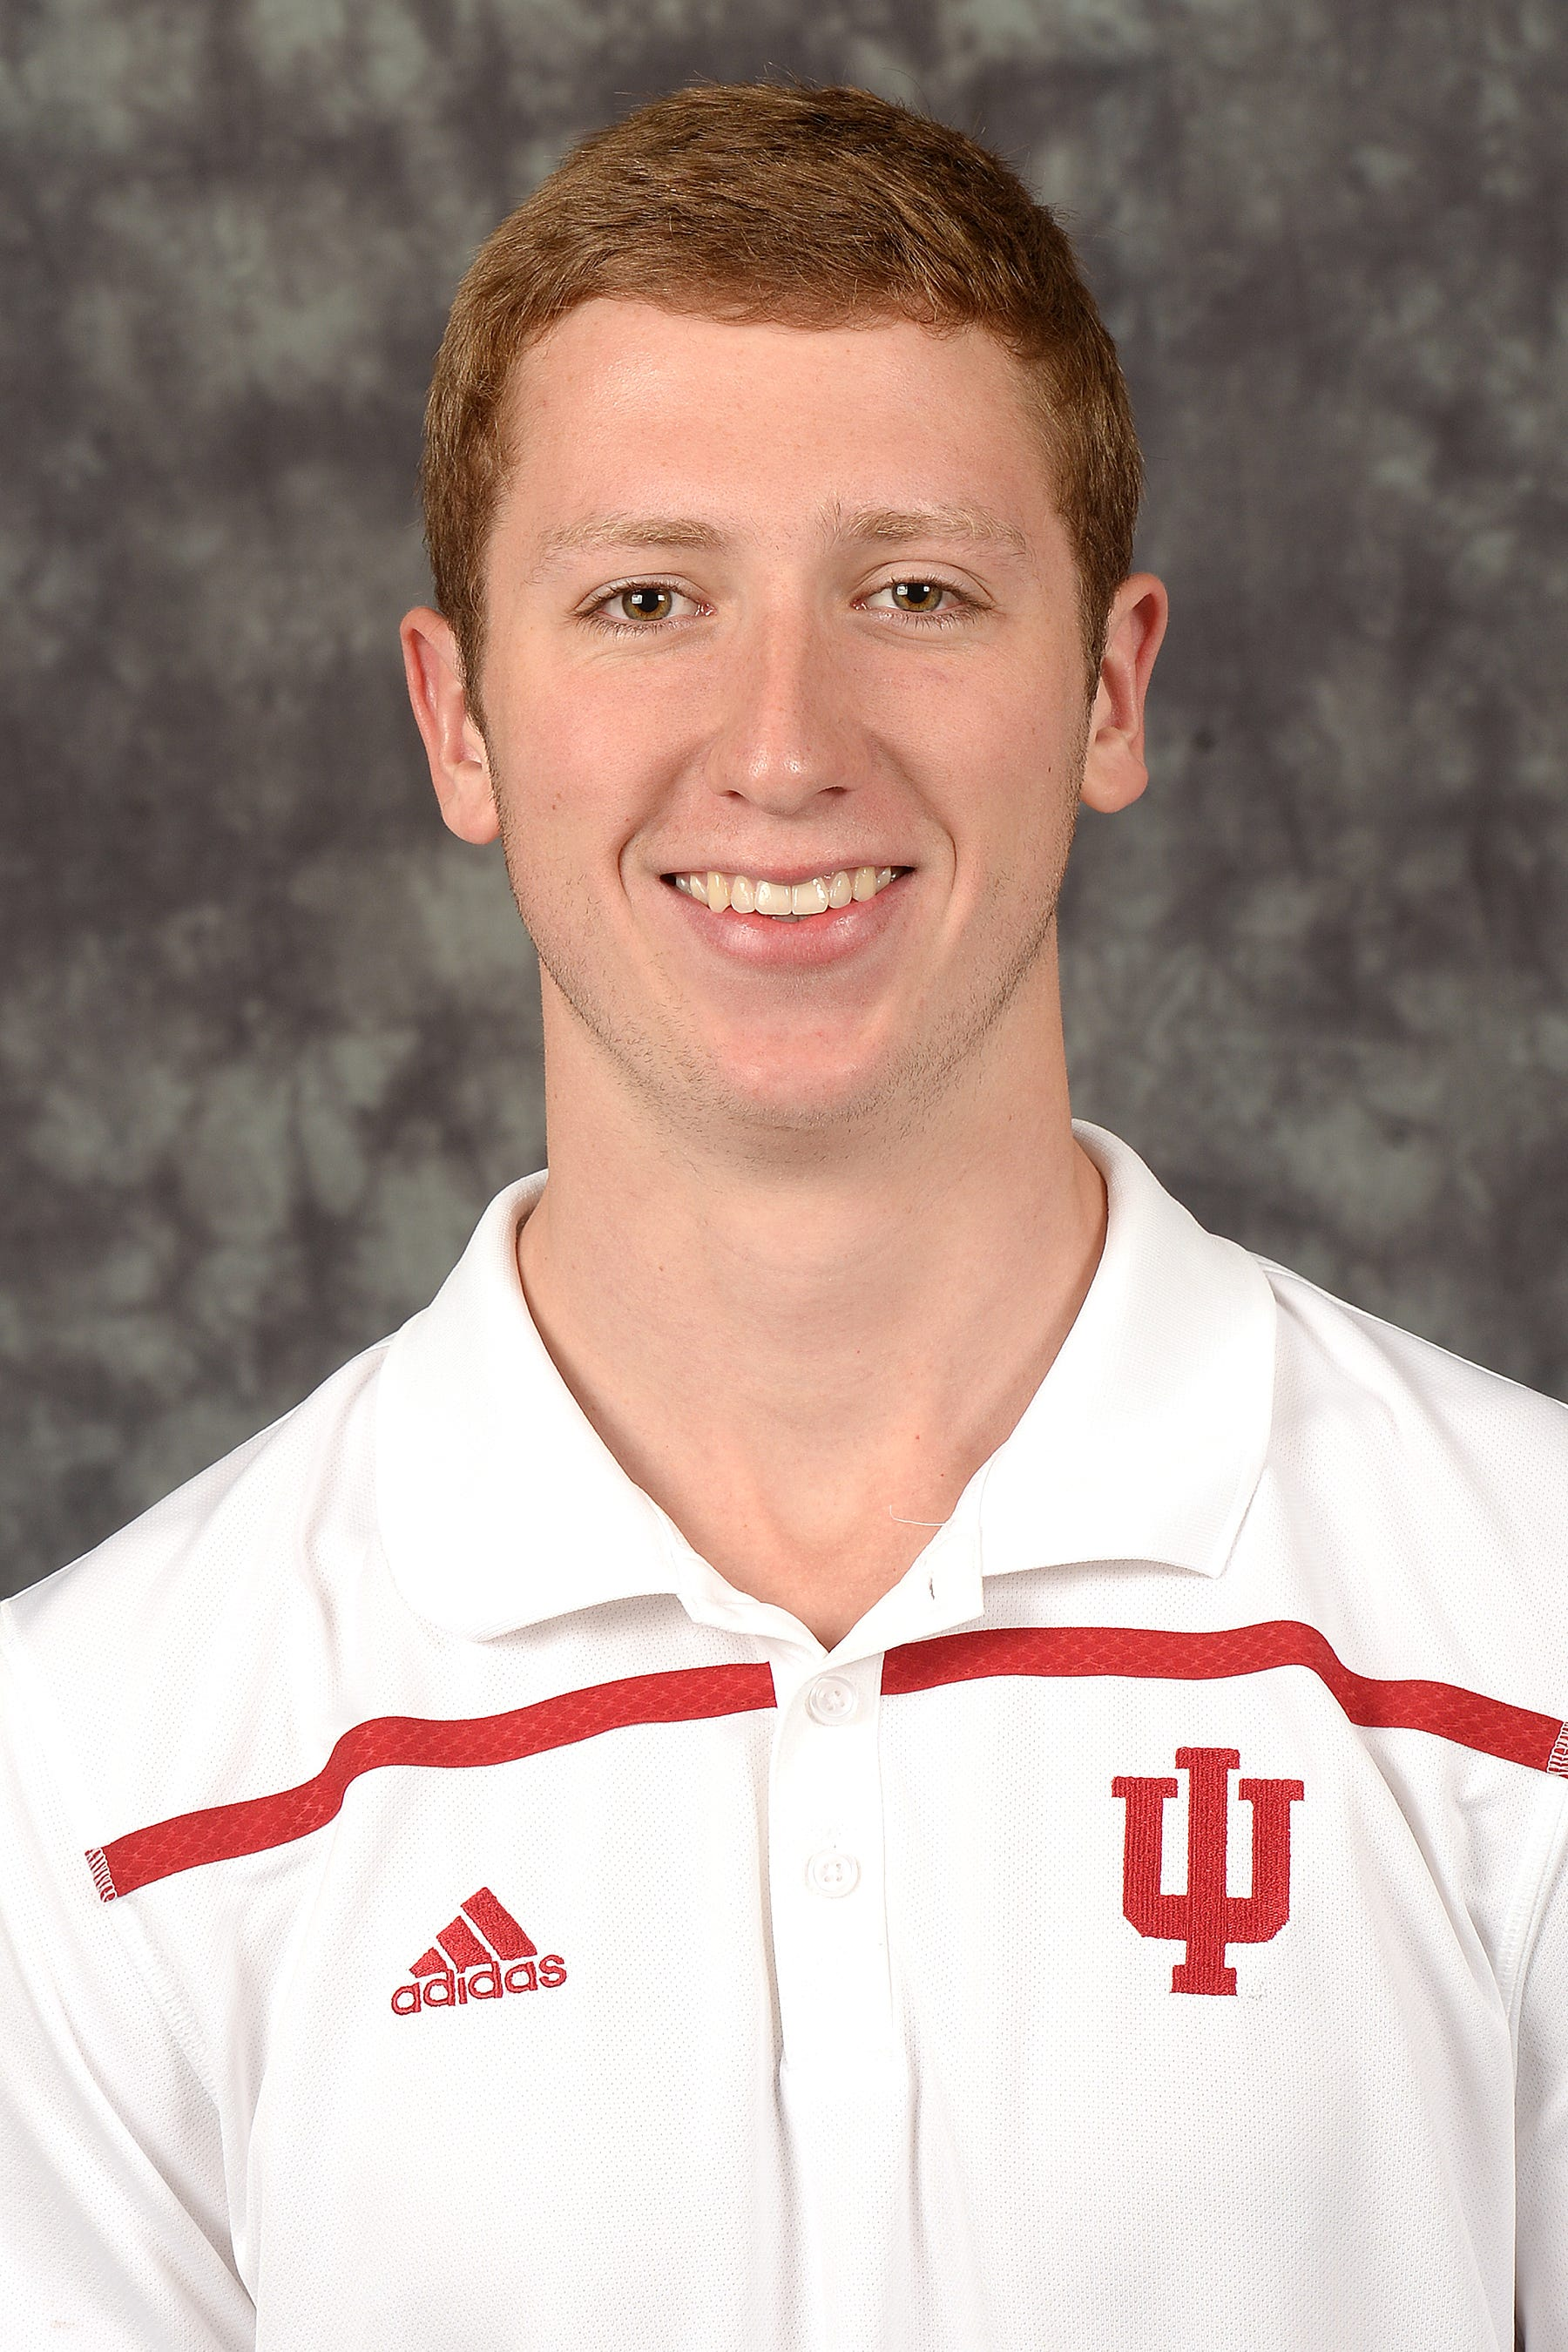 How North Central swimmer went from IU walk-on to All-American